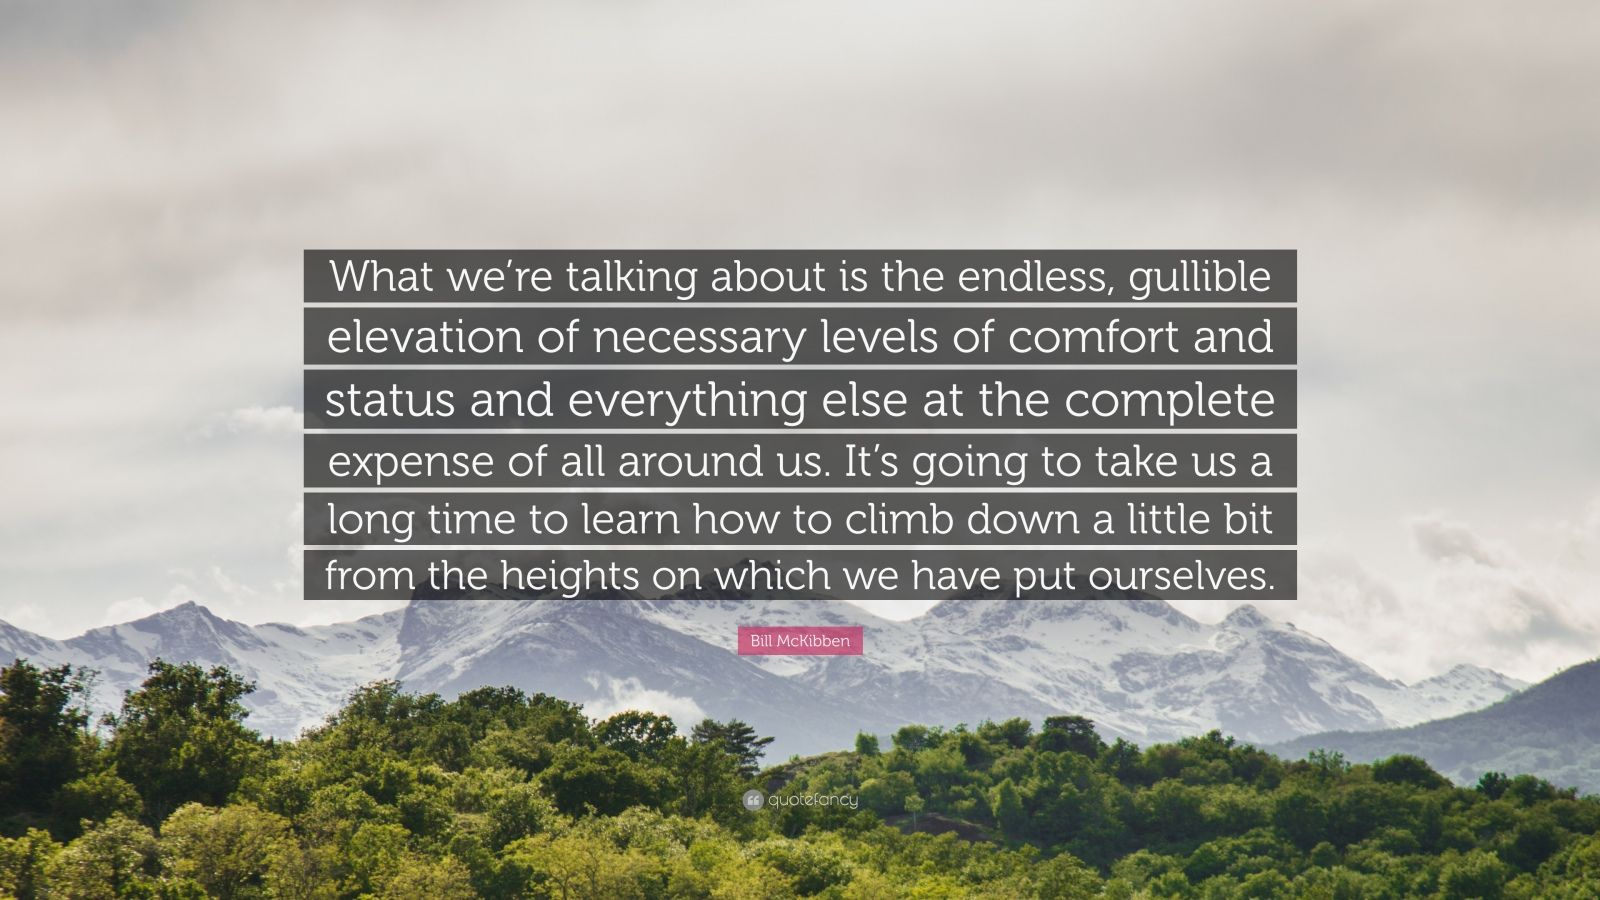 """Bill McKibben Quote: """"What we're talking about is the endless, gullible elevation of necessary levels of comfort and status and everything else at the complete expense of all around us. It's going to take us a long time to learn how to climb down a little bit from the heights on which we have put ourselves."""""""